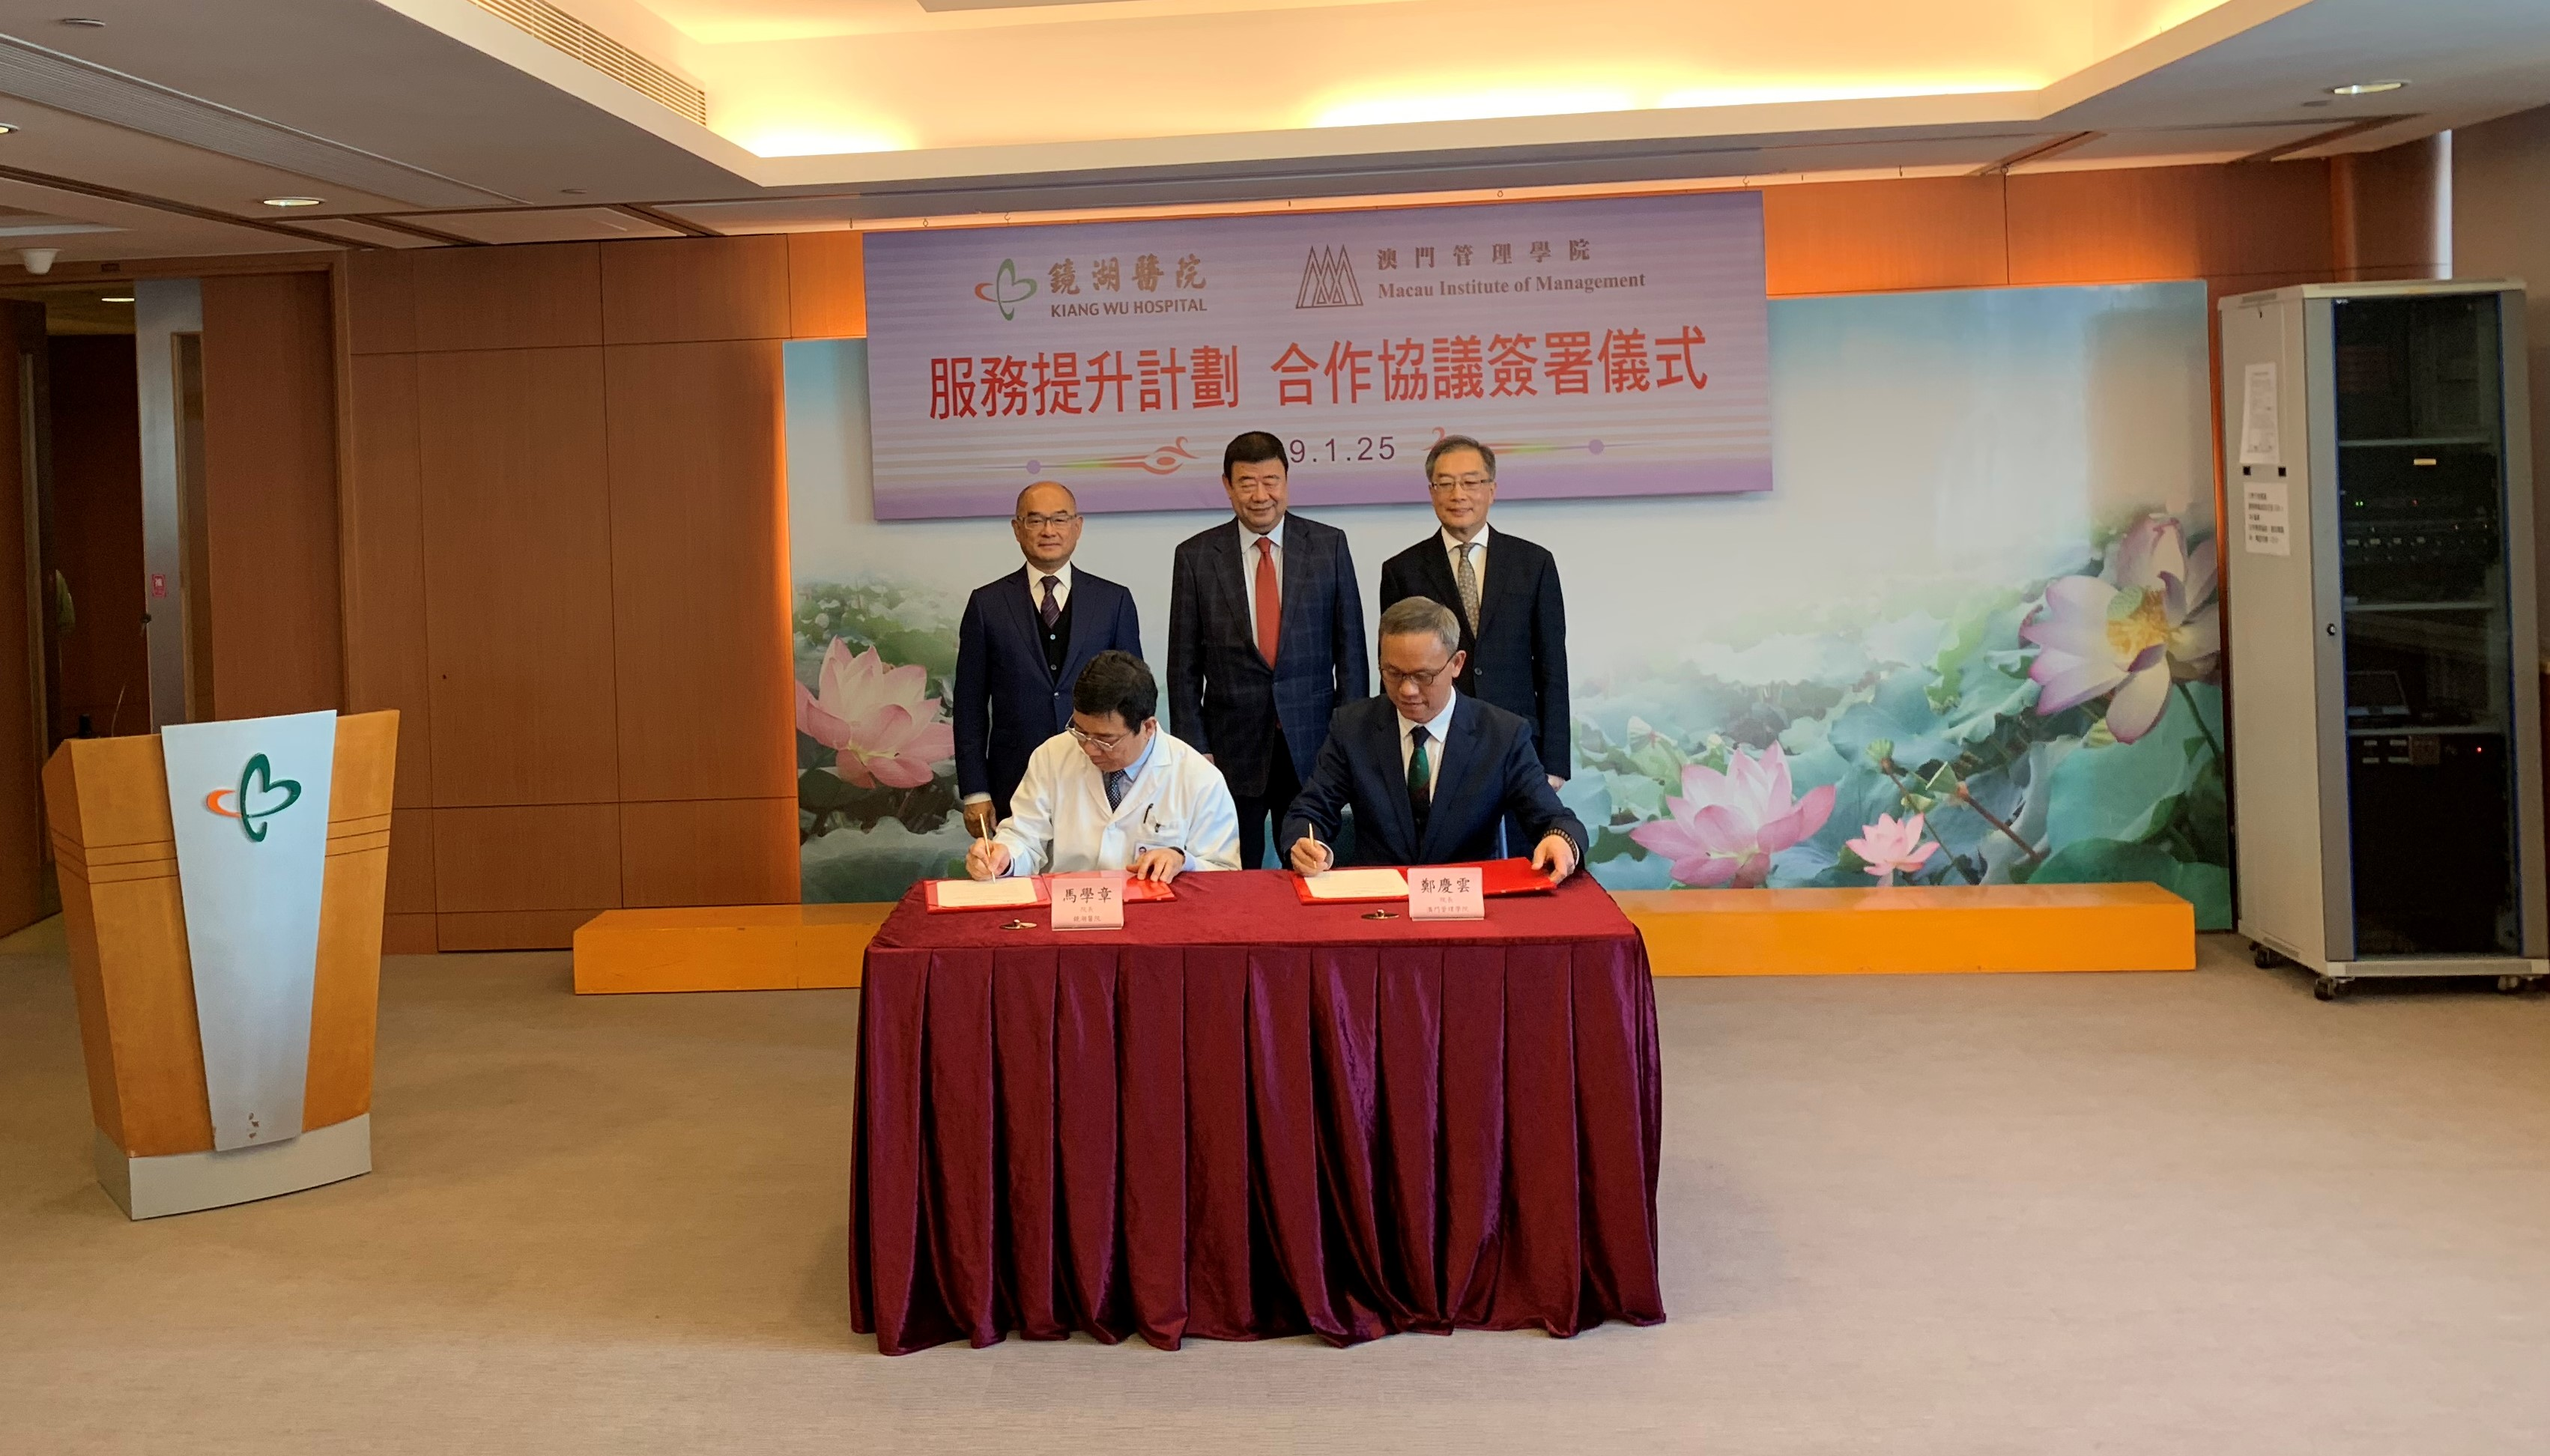 MIM signed Collaboration Agreement with Kiang Wu Hospital